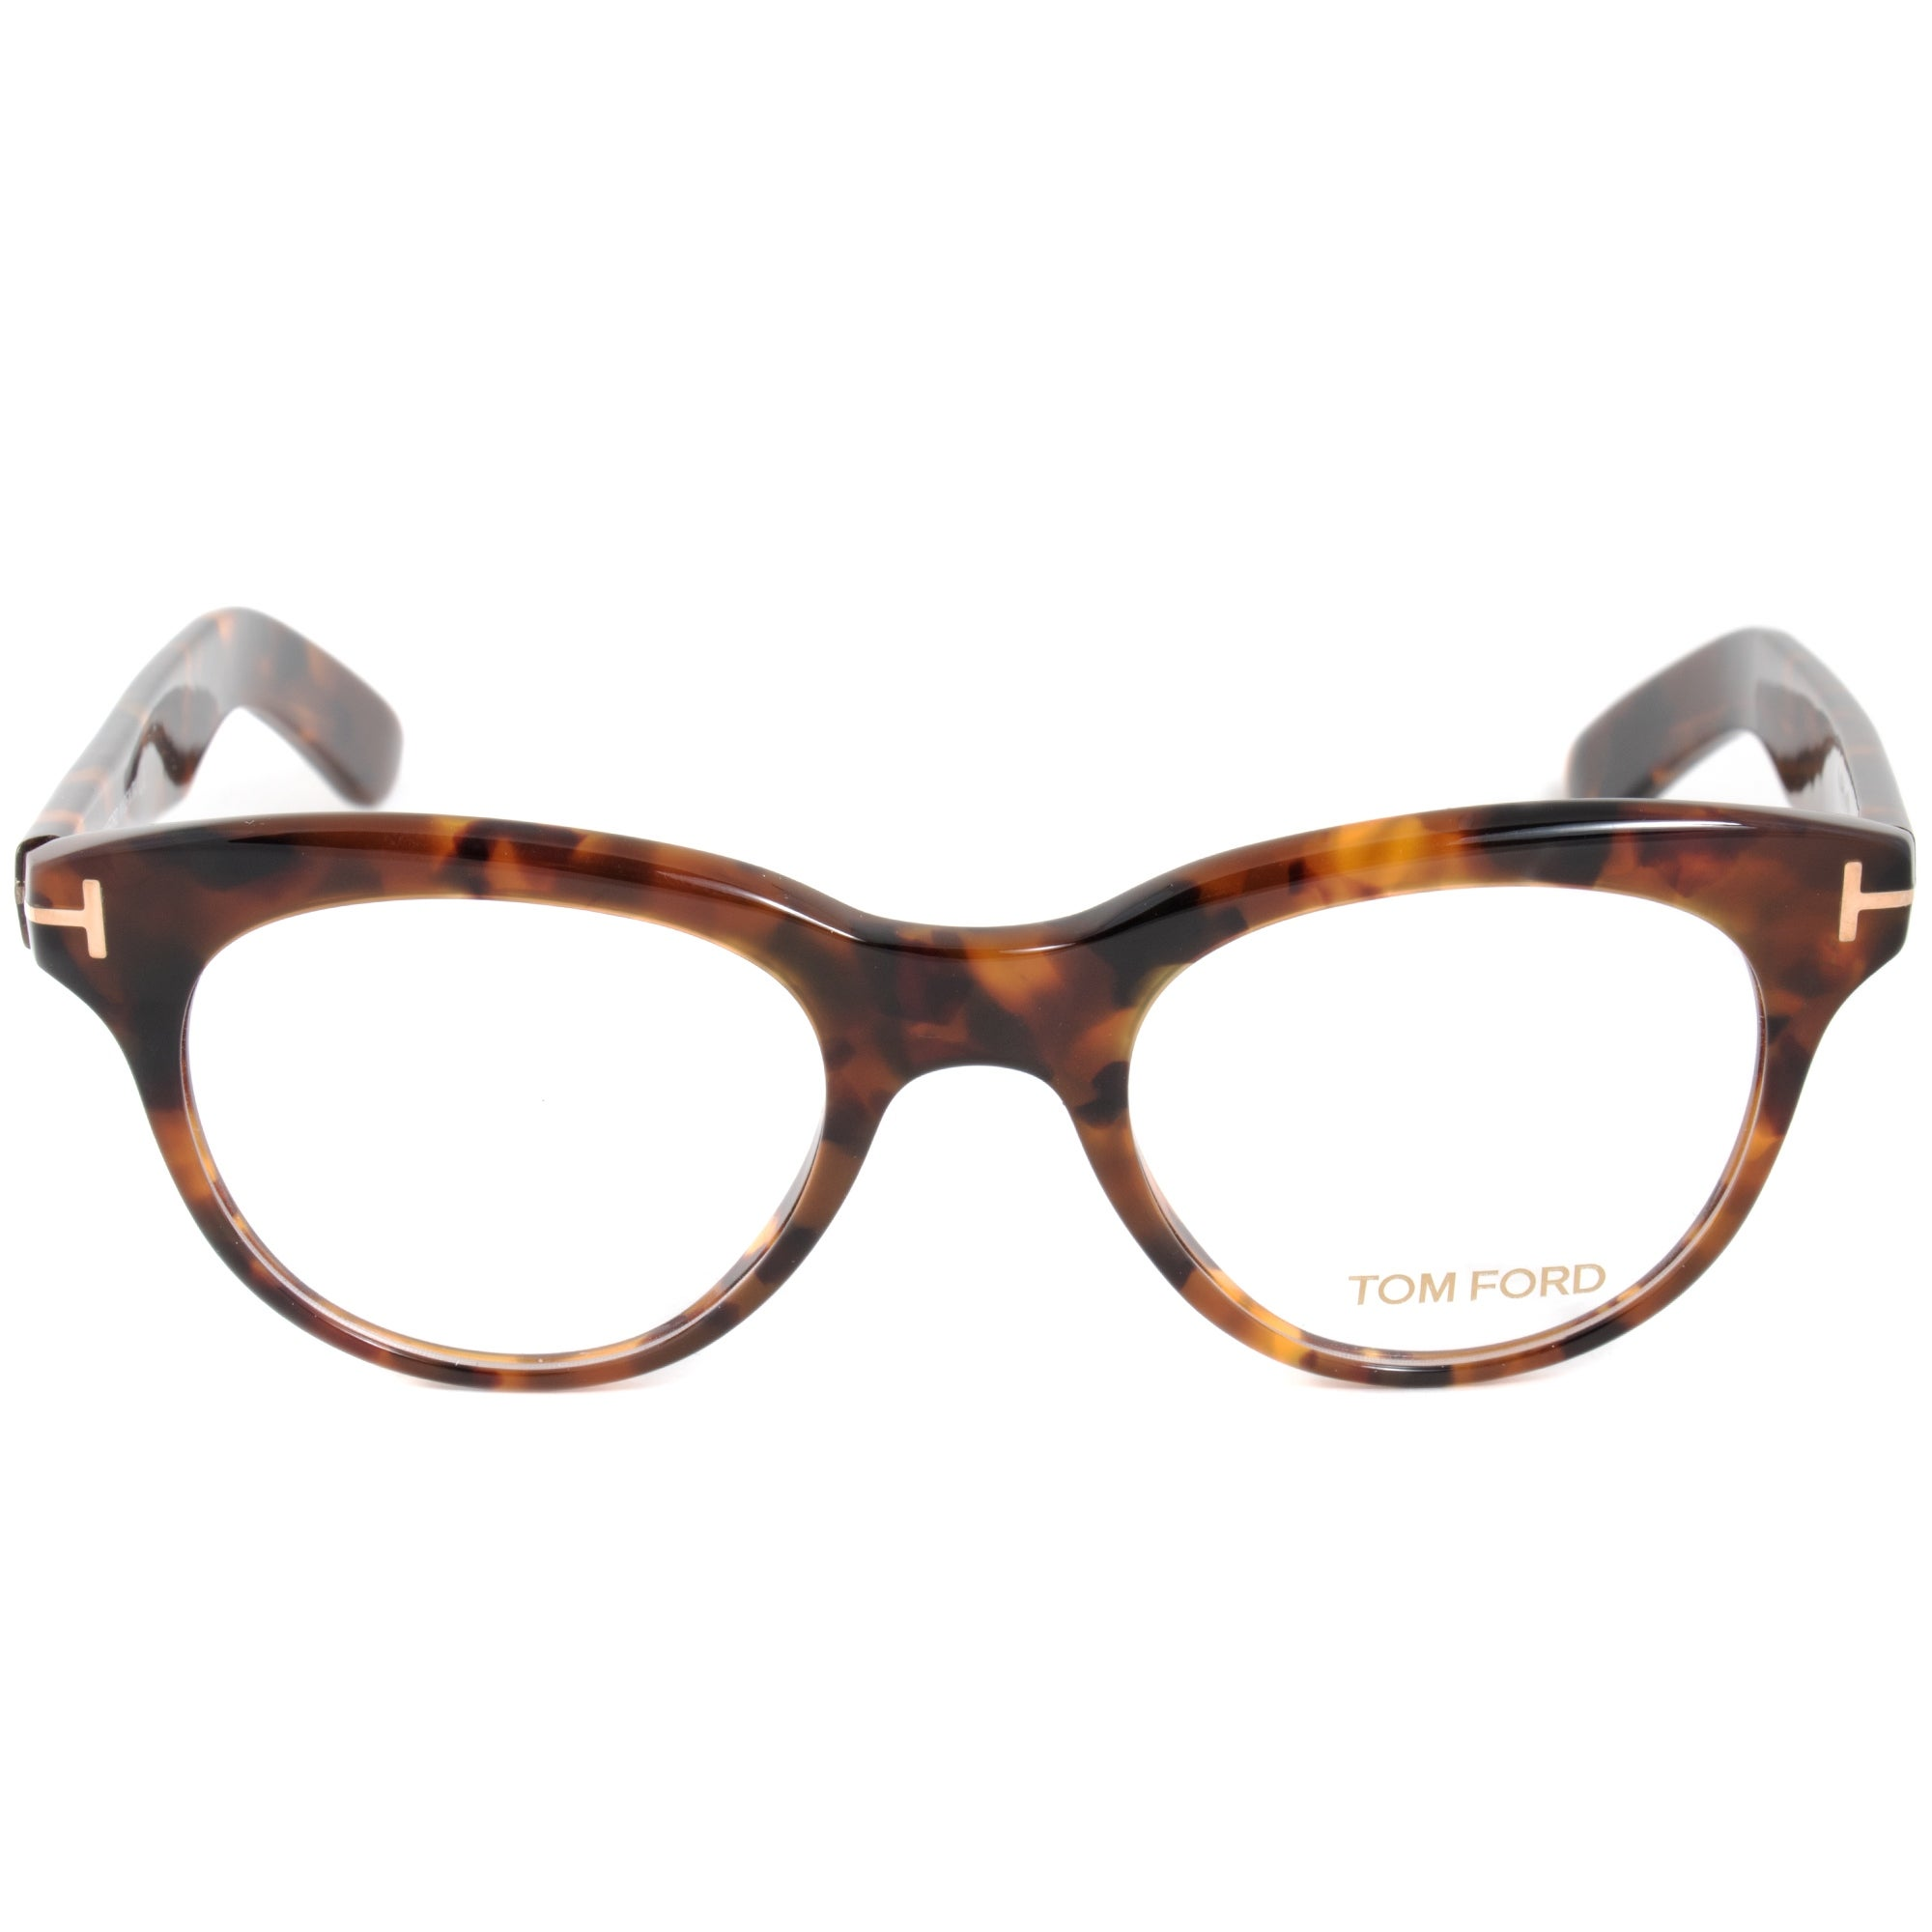 747d1cd90e Tom Ford Eyeglasses